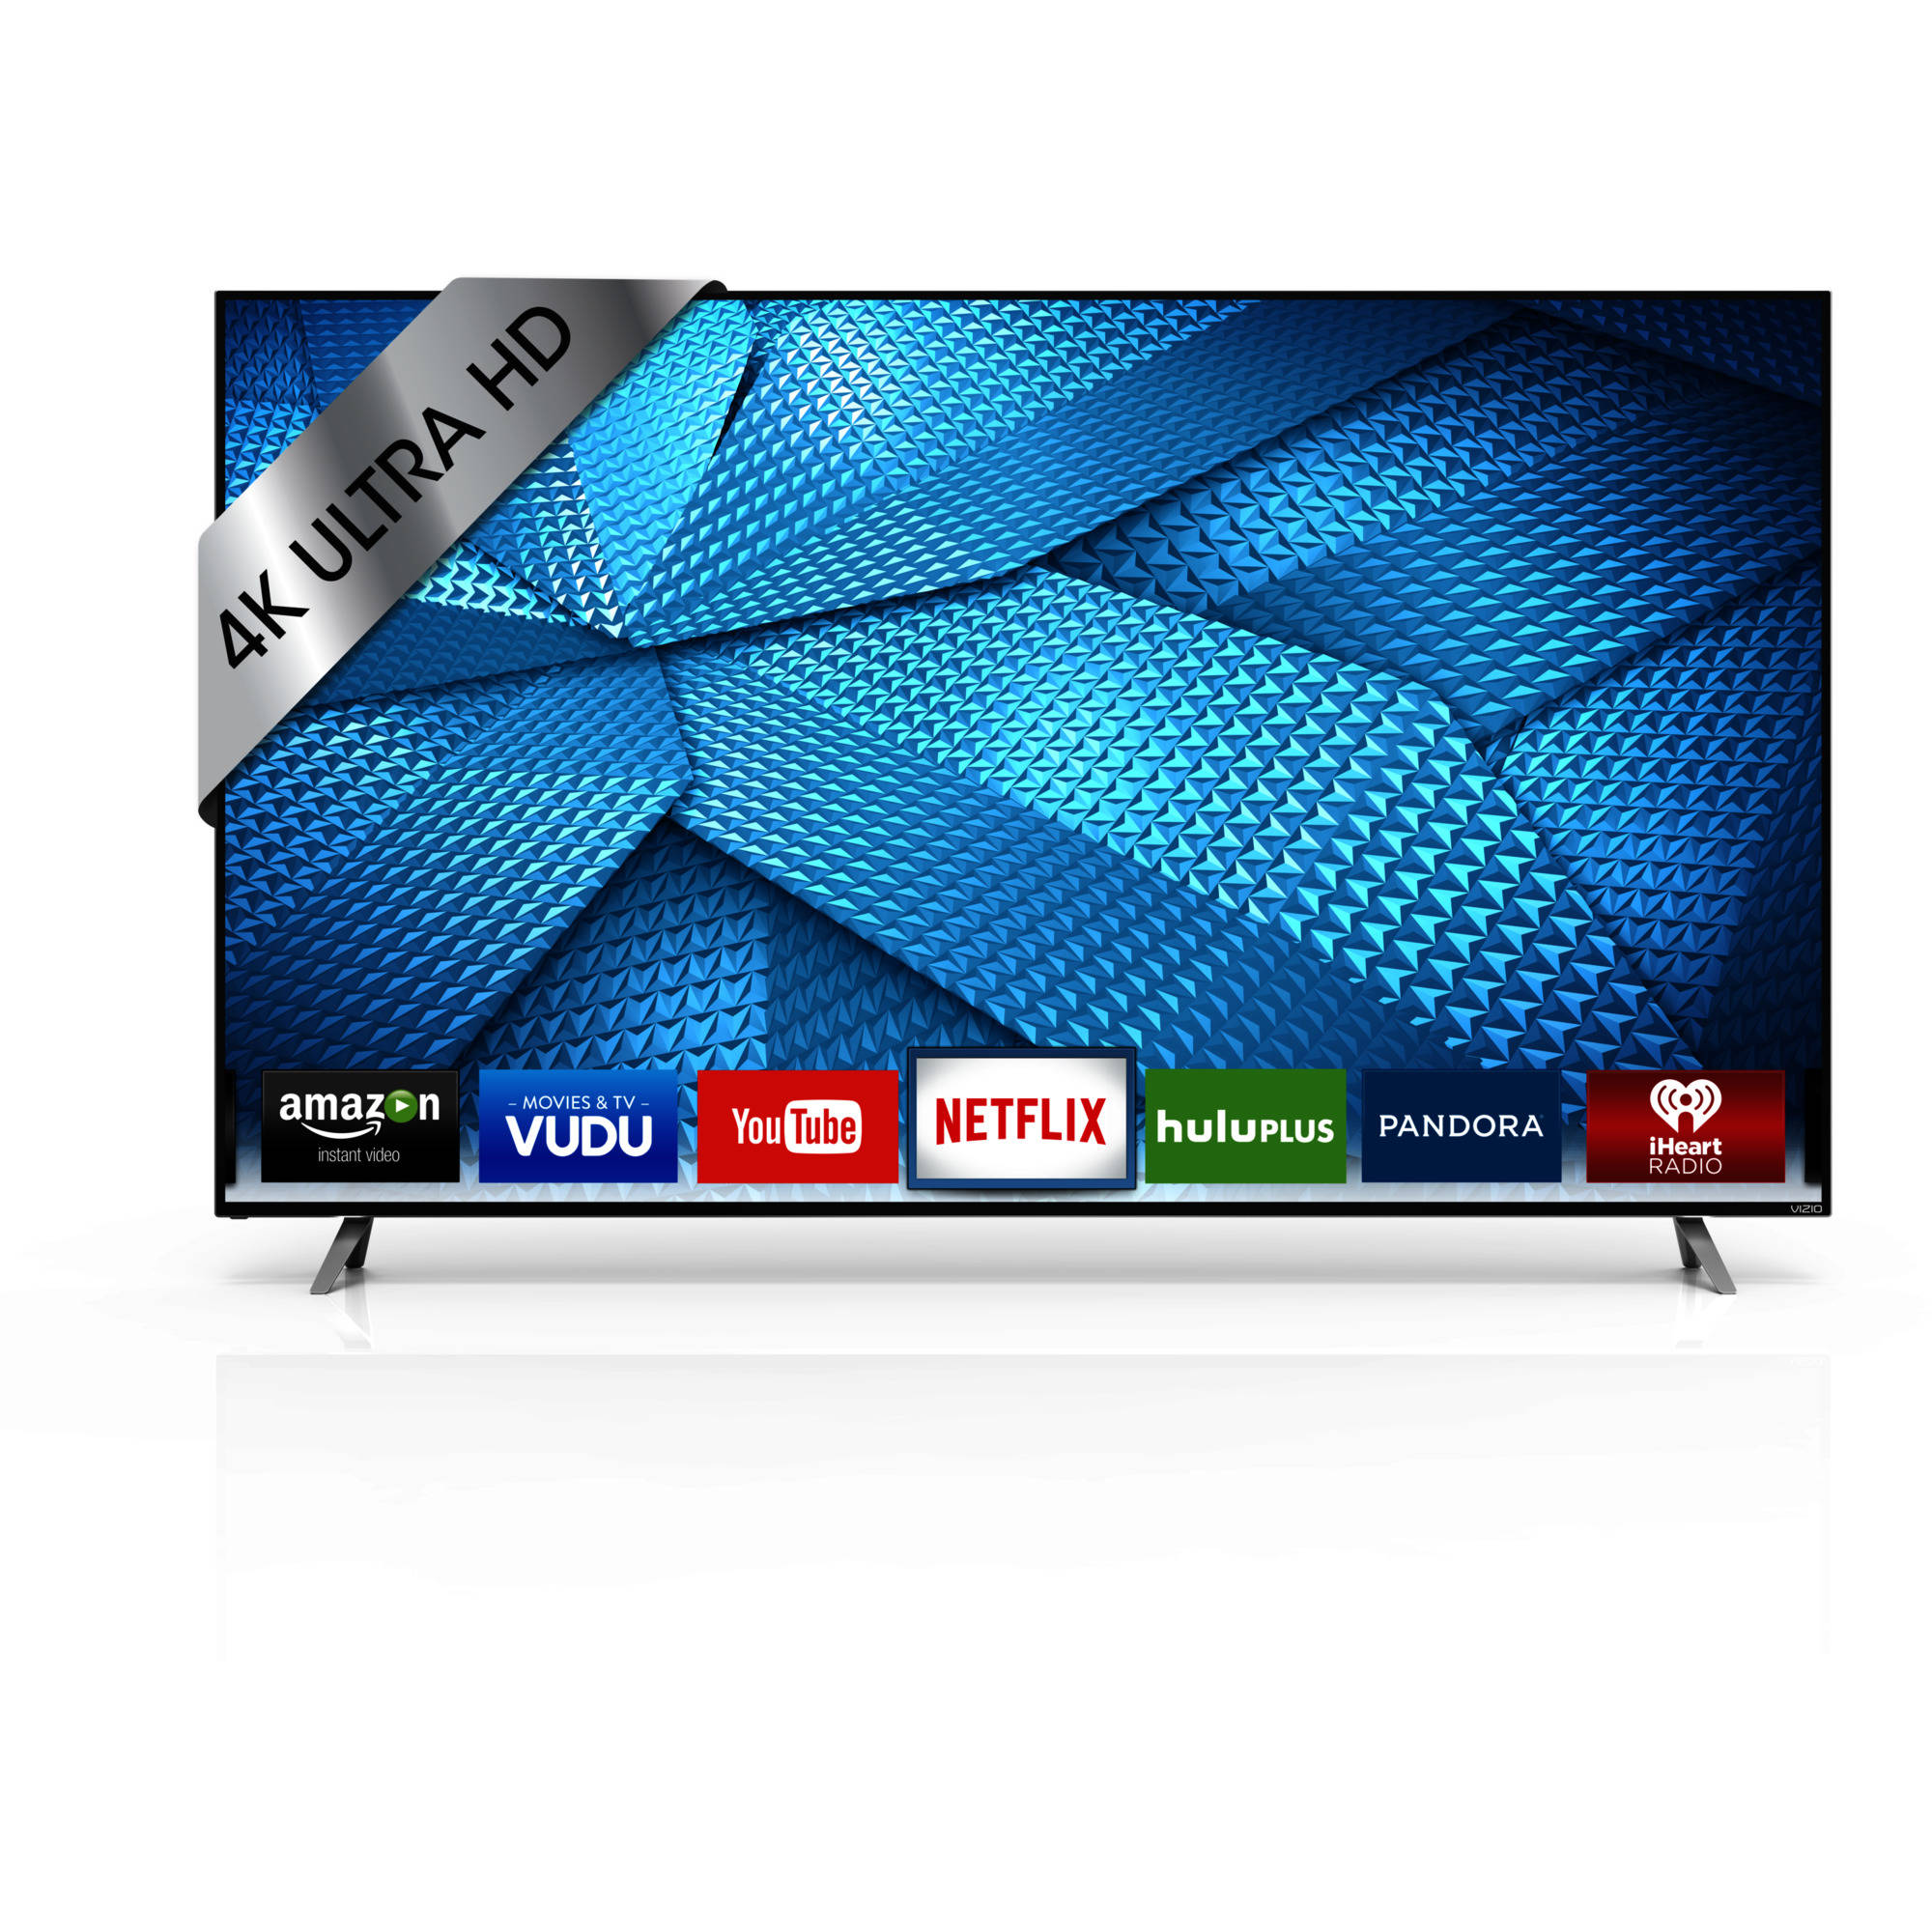 Vizio 43 Full-array Led Uhd Iptv